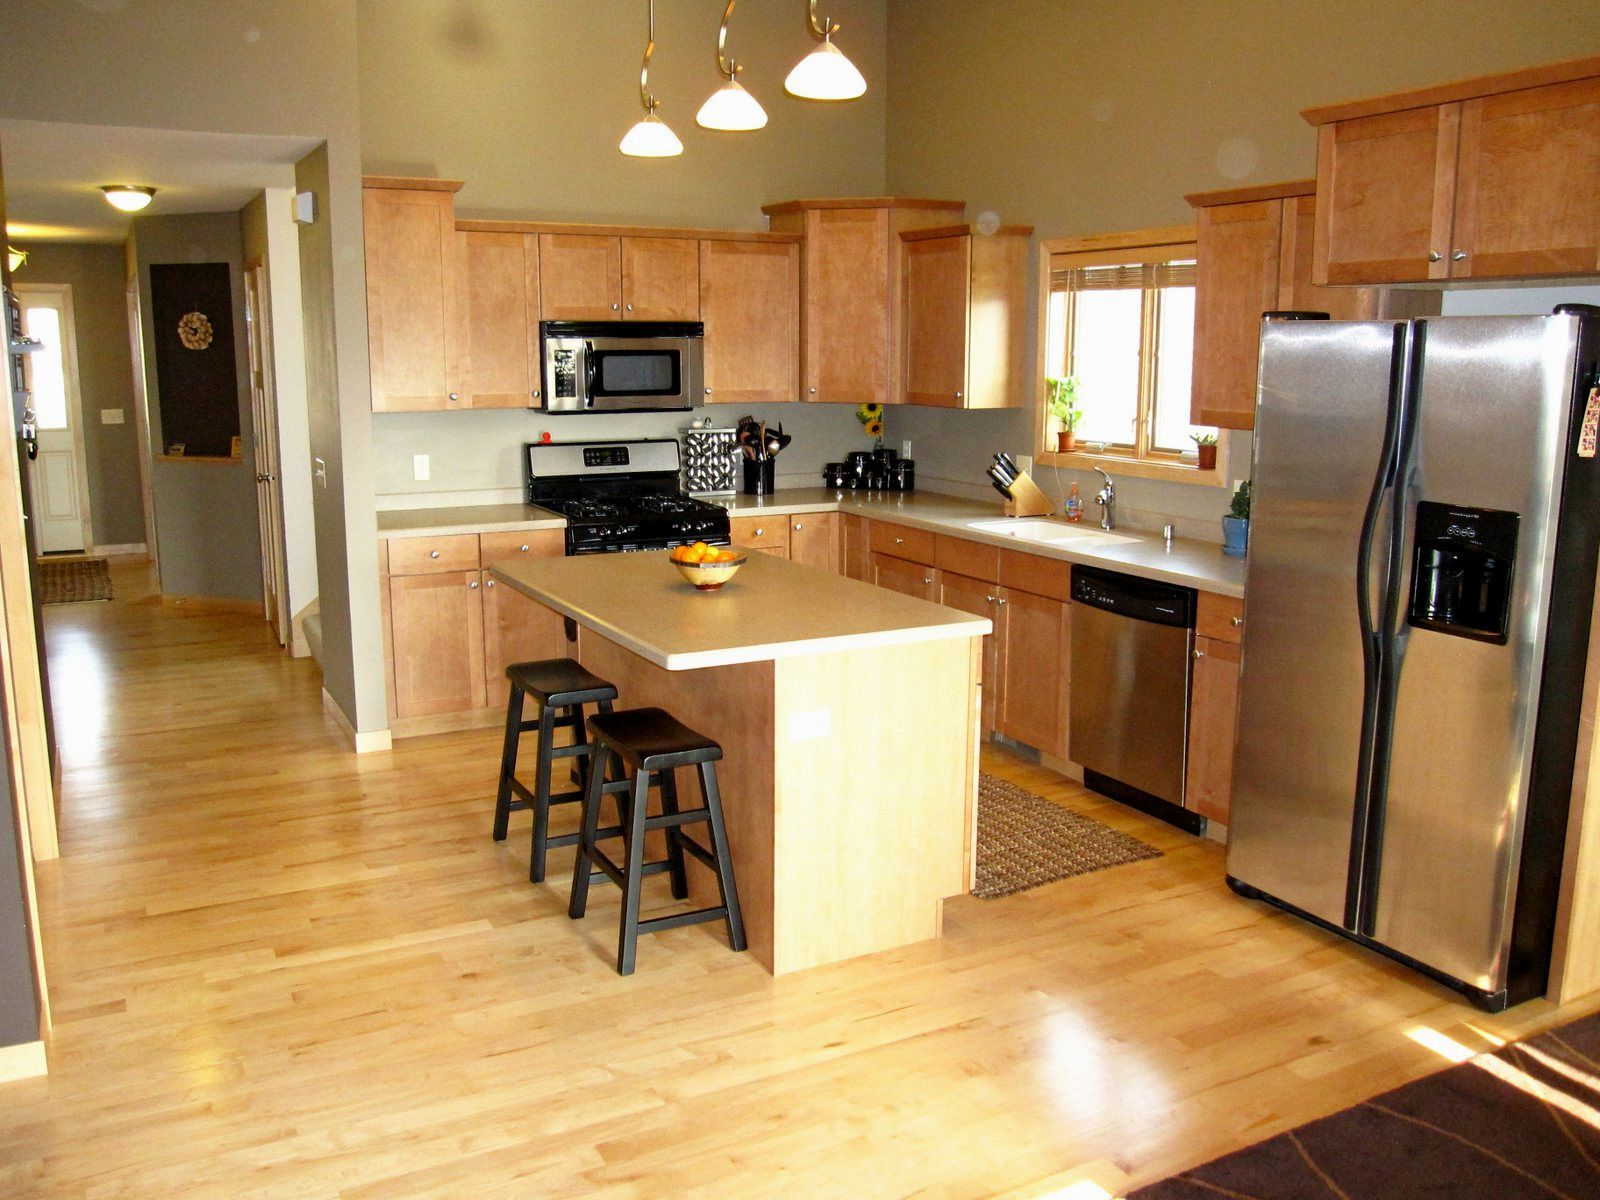 Image Result For Maple Cabinets Flooring Maple Cabinets Kitchen Design Wood Floor Kitchen